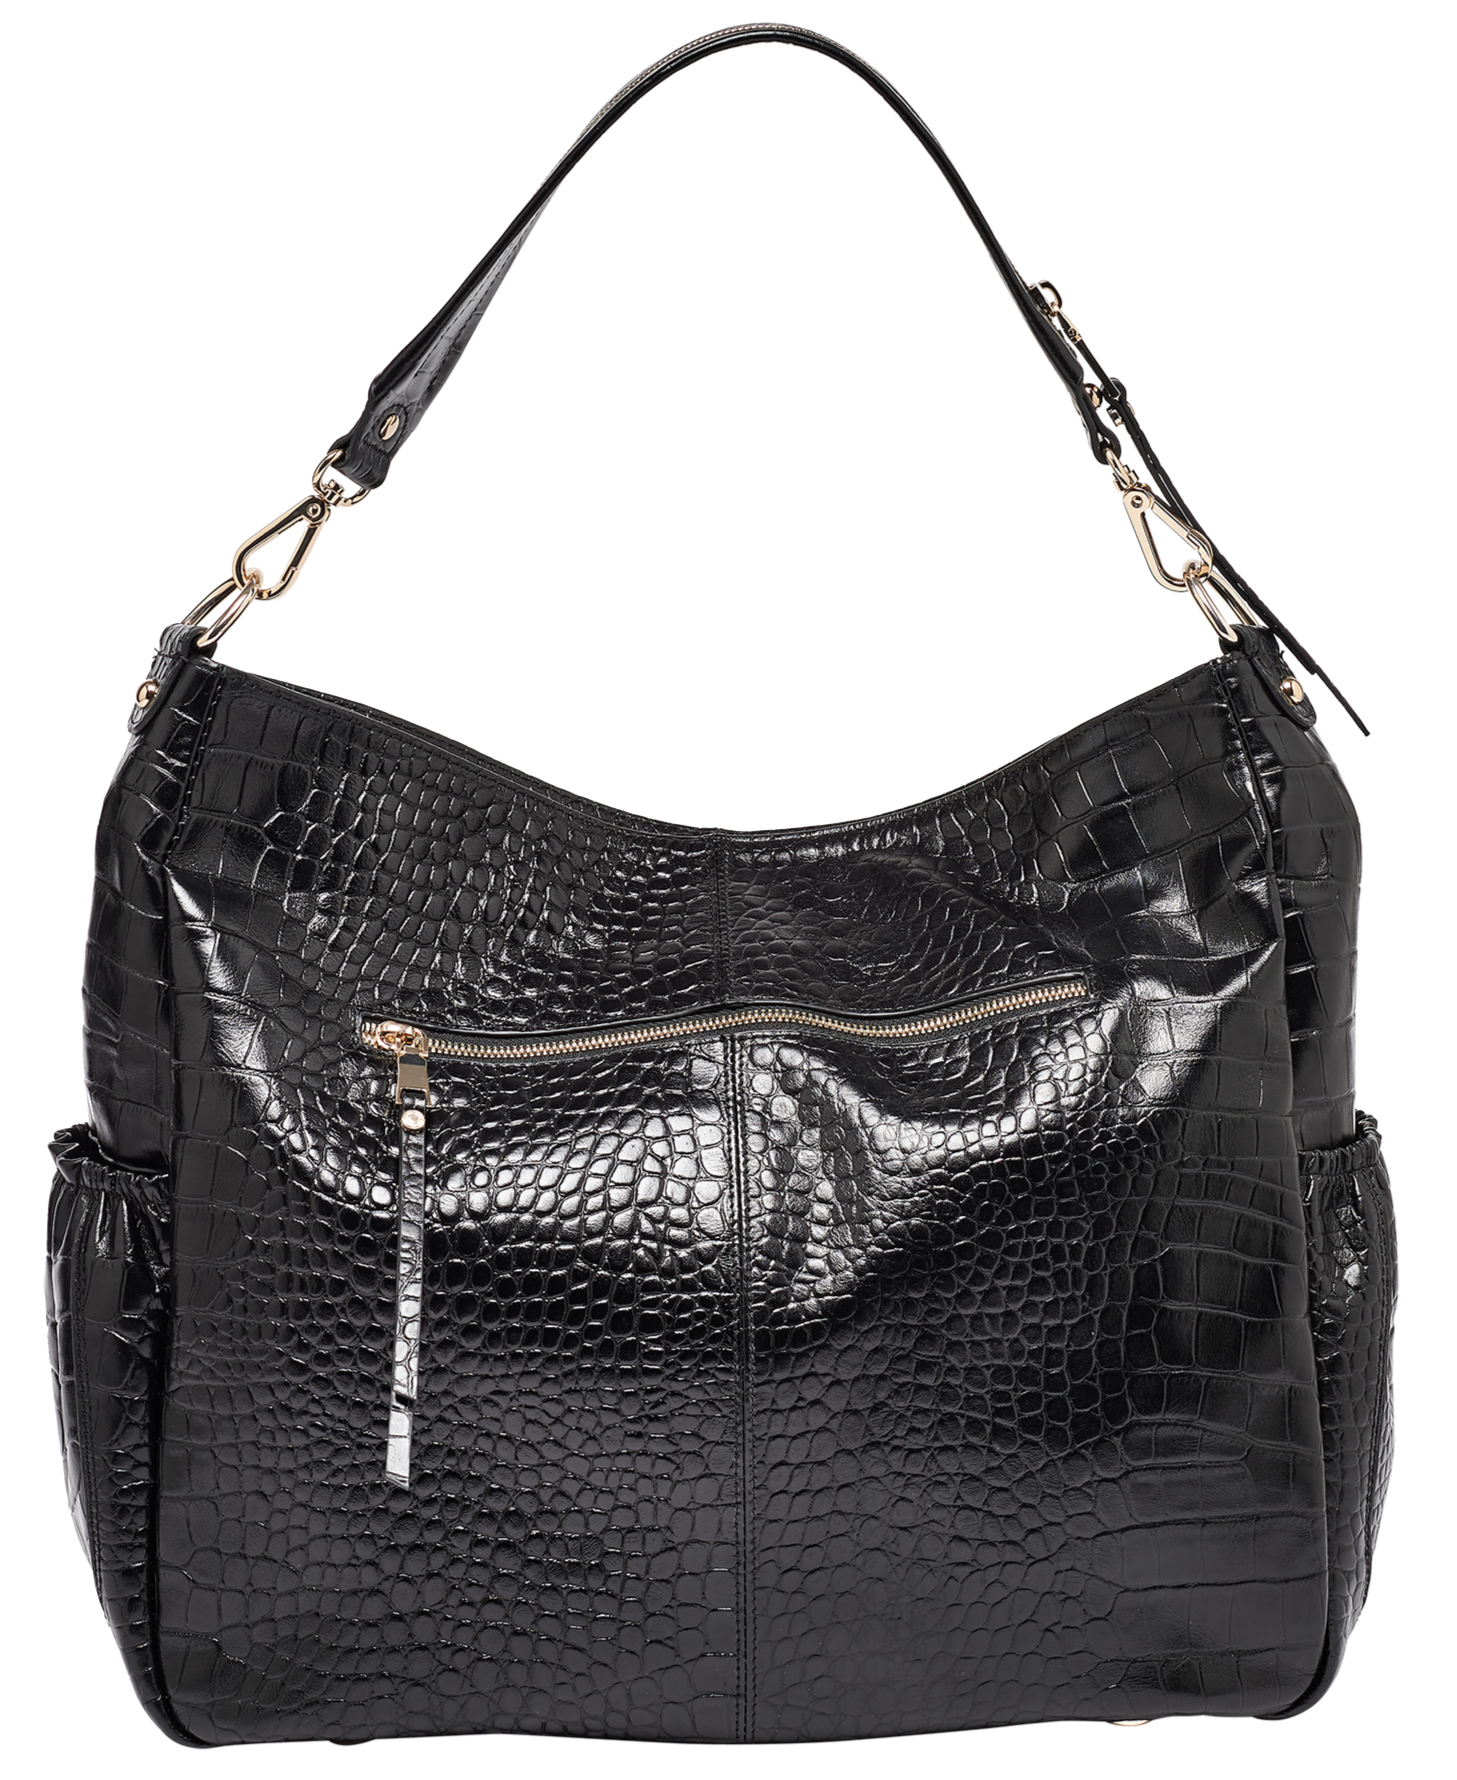 Lennox Black Croc Crossover Leather Handbag - Preorder Now For Mid-September